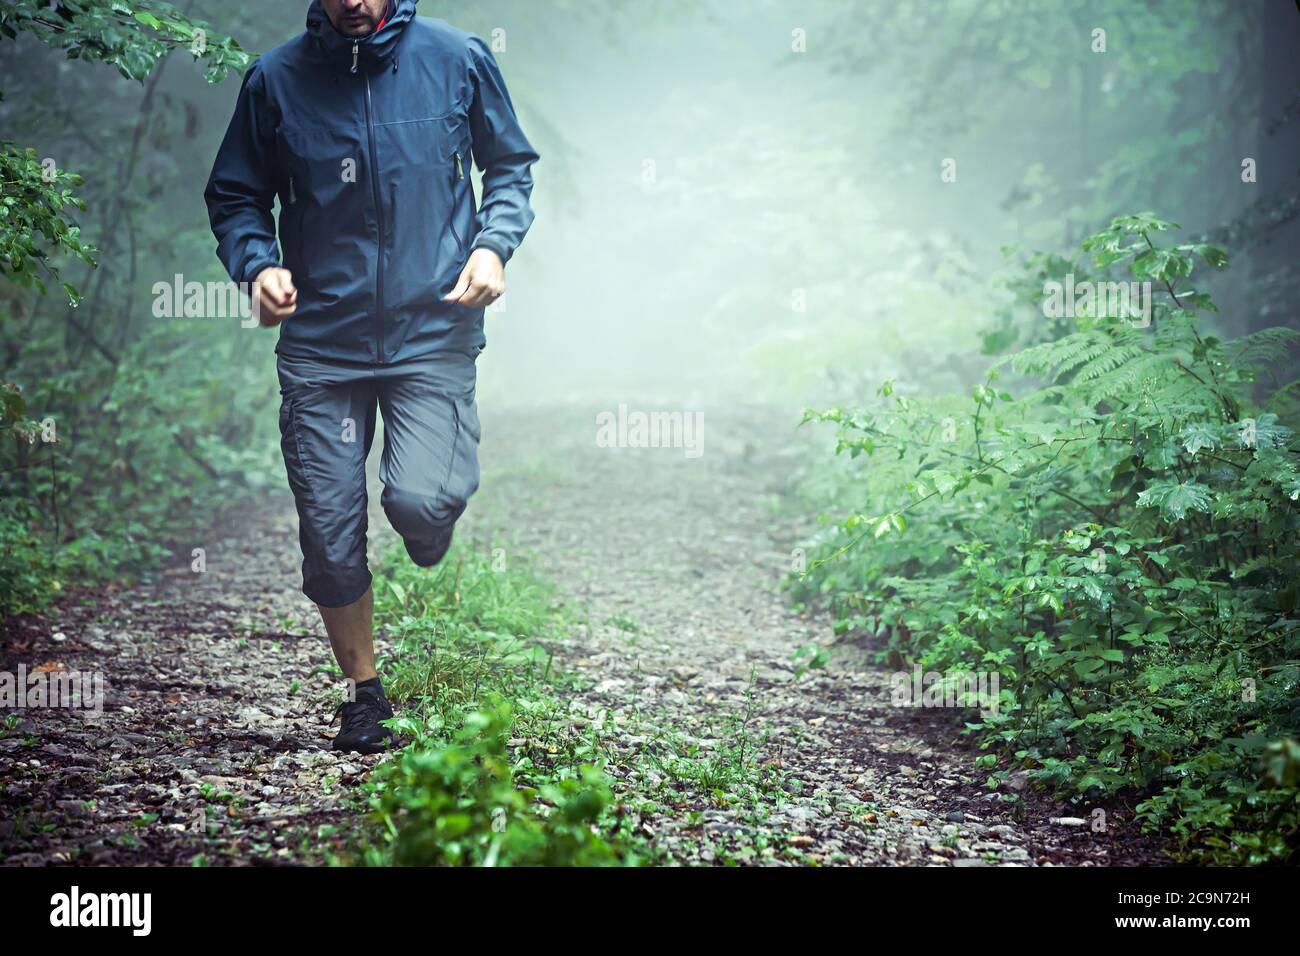 Close up of male athlete, wearing outdoor clothes, running through misty forest early in the morning. Copy space available. Stock Photo